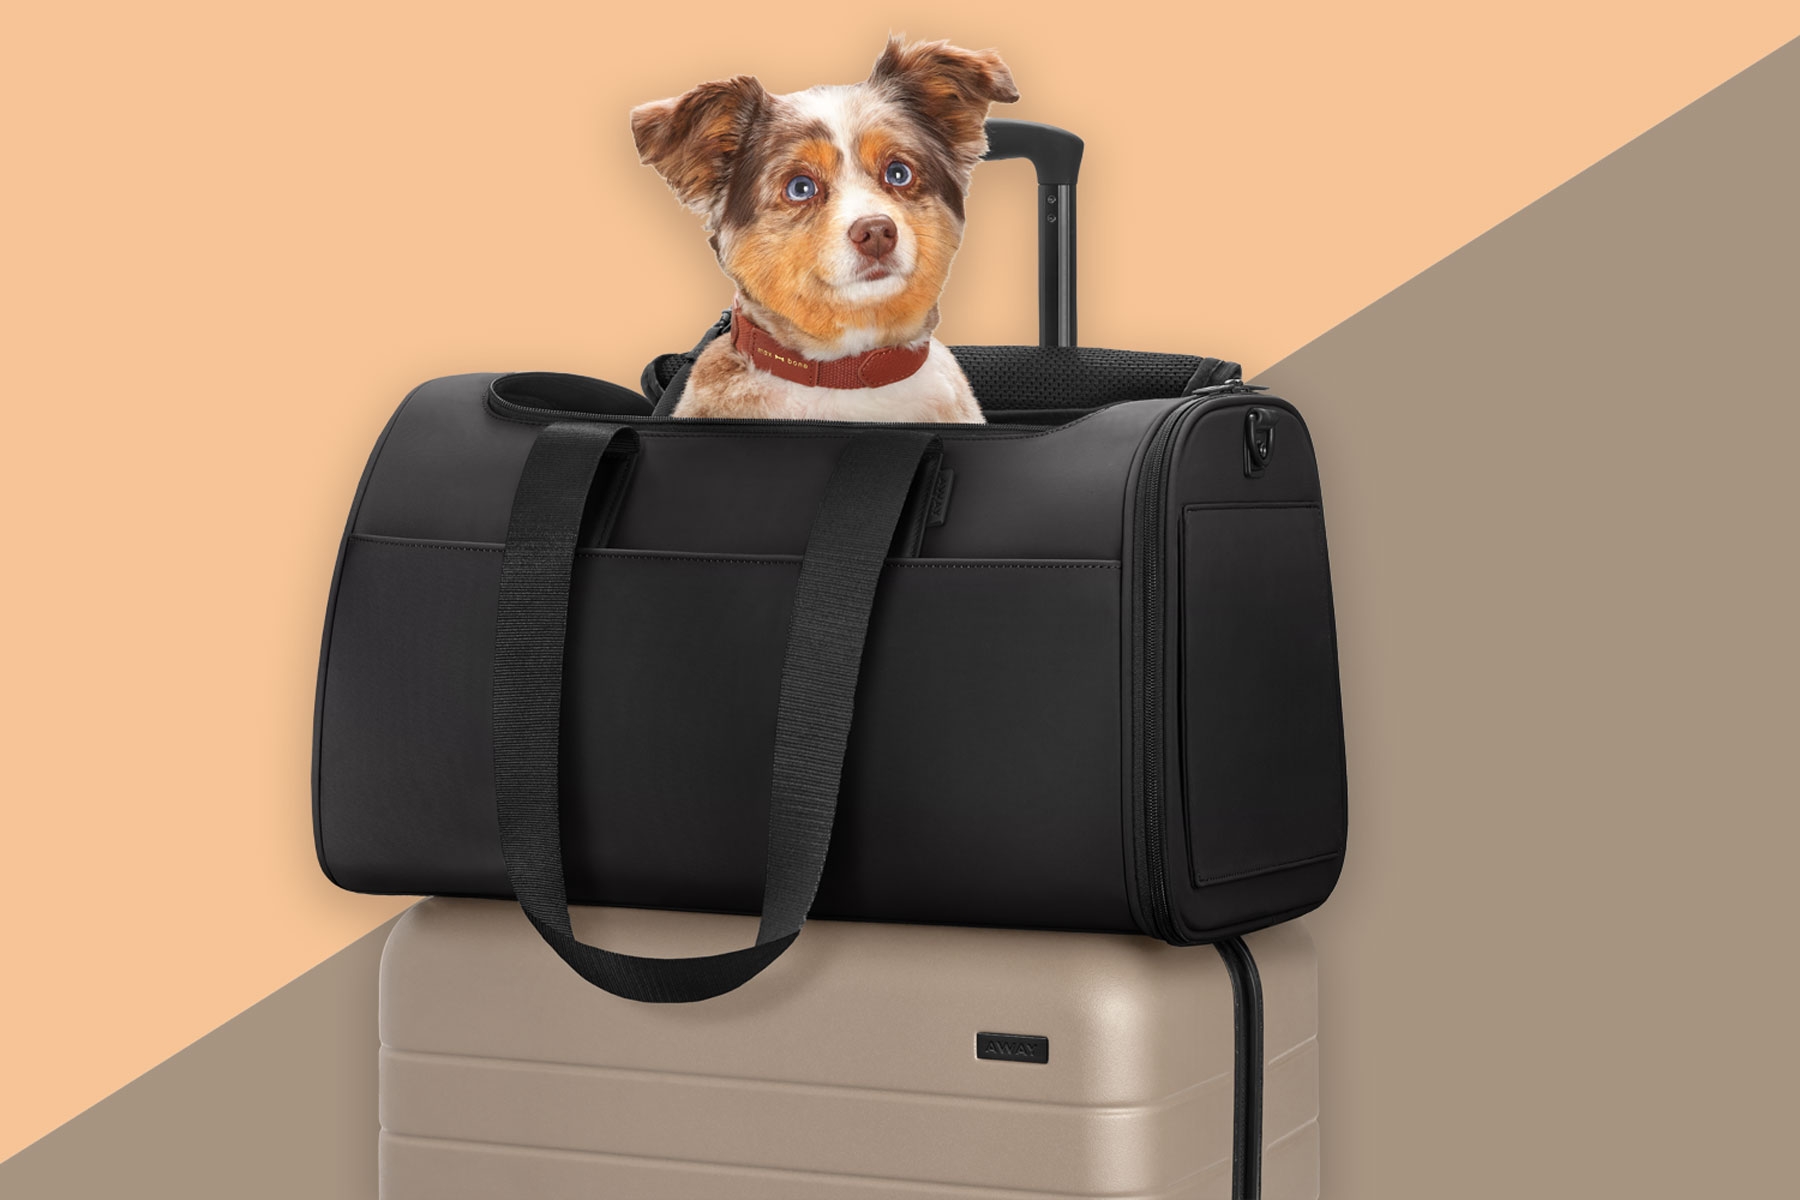 Pet carrier with dog on top of rolling suitcase